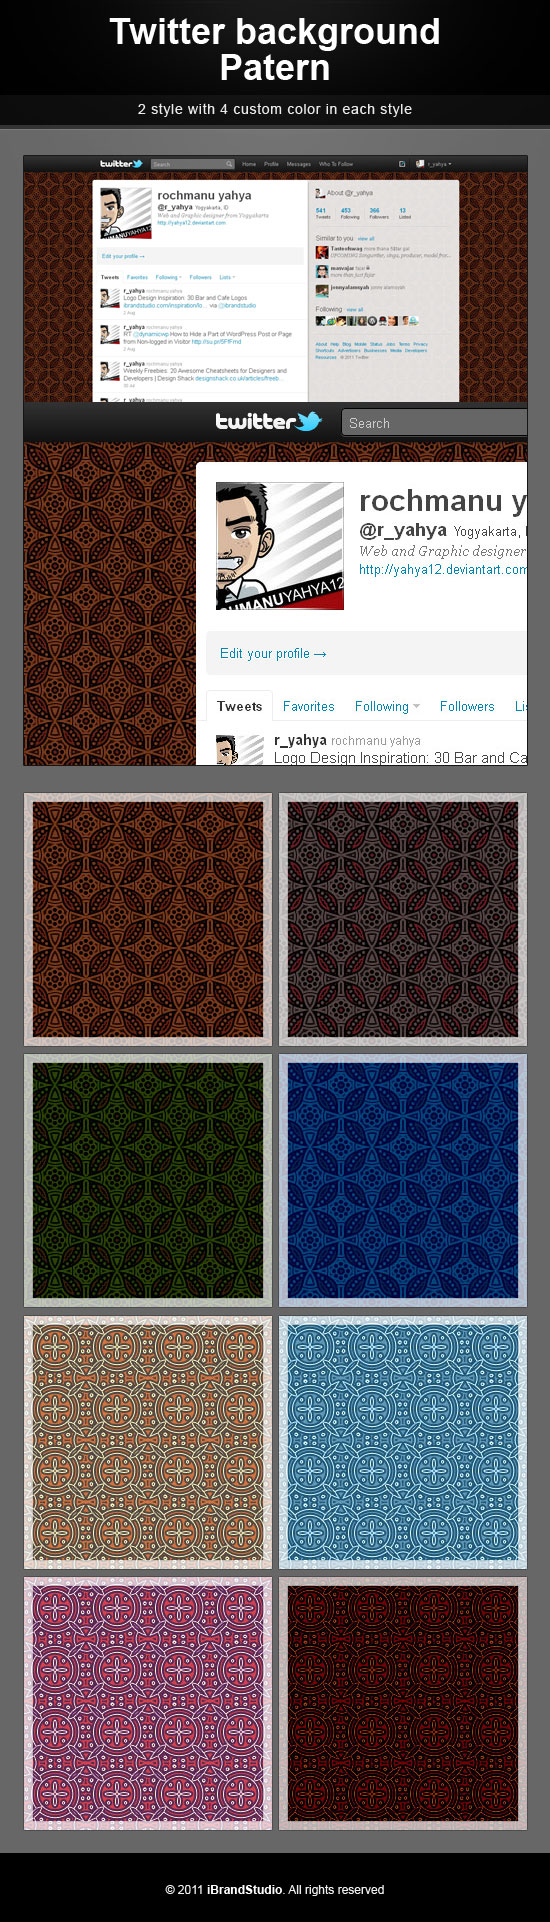 Free Twitter Background Beautiful Batik